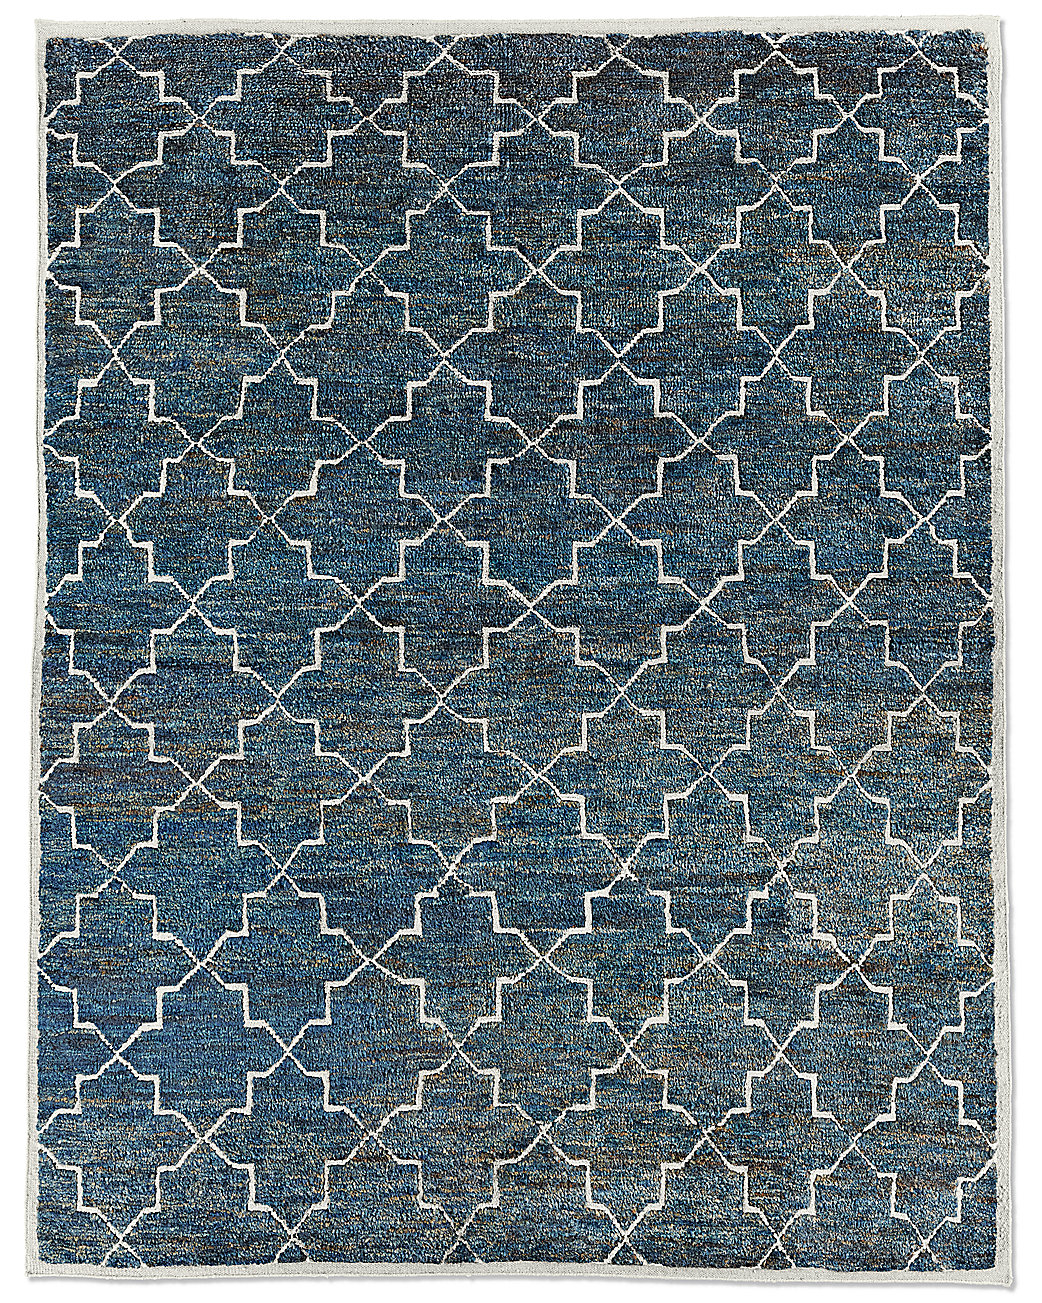 Restoration Hardware Moroccan Star Rug - Ocean | Fancy Friday - Dream Apartment Decorating